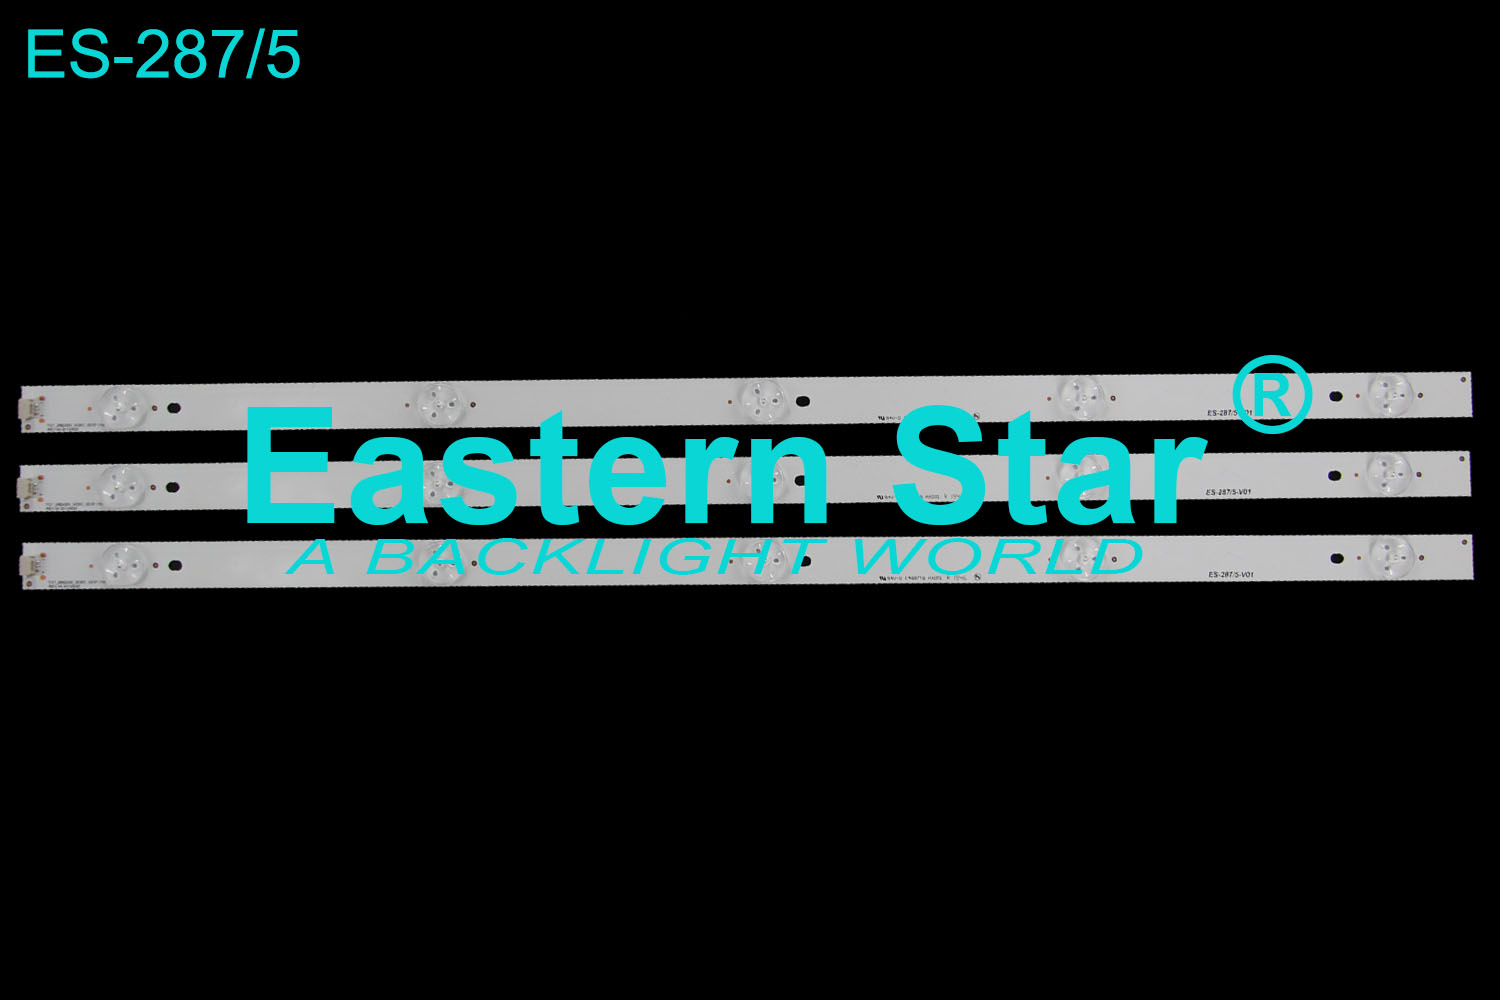 ES-287 TV Backlight use for Goldstar with 5LEDs TOT_28B2550_3030C_5S1P 17MM REV.V4 2013/9/25 led backlight strips (3)